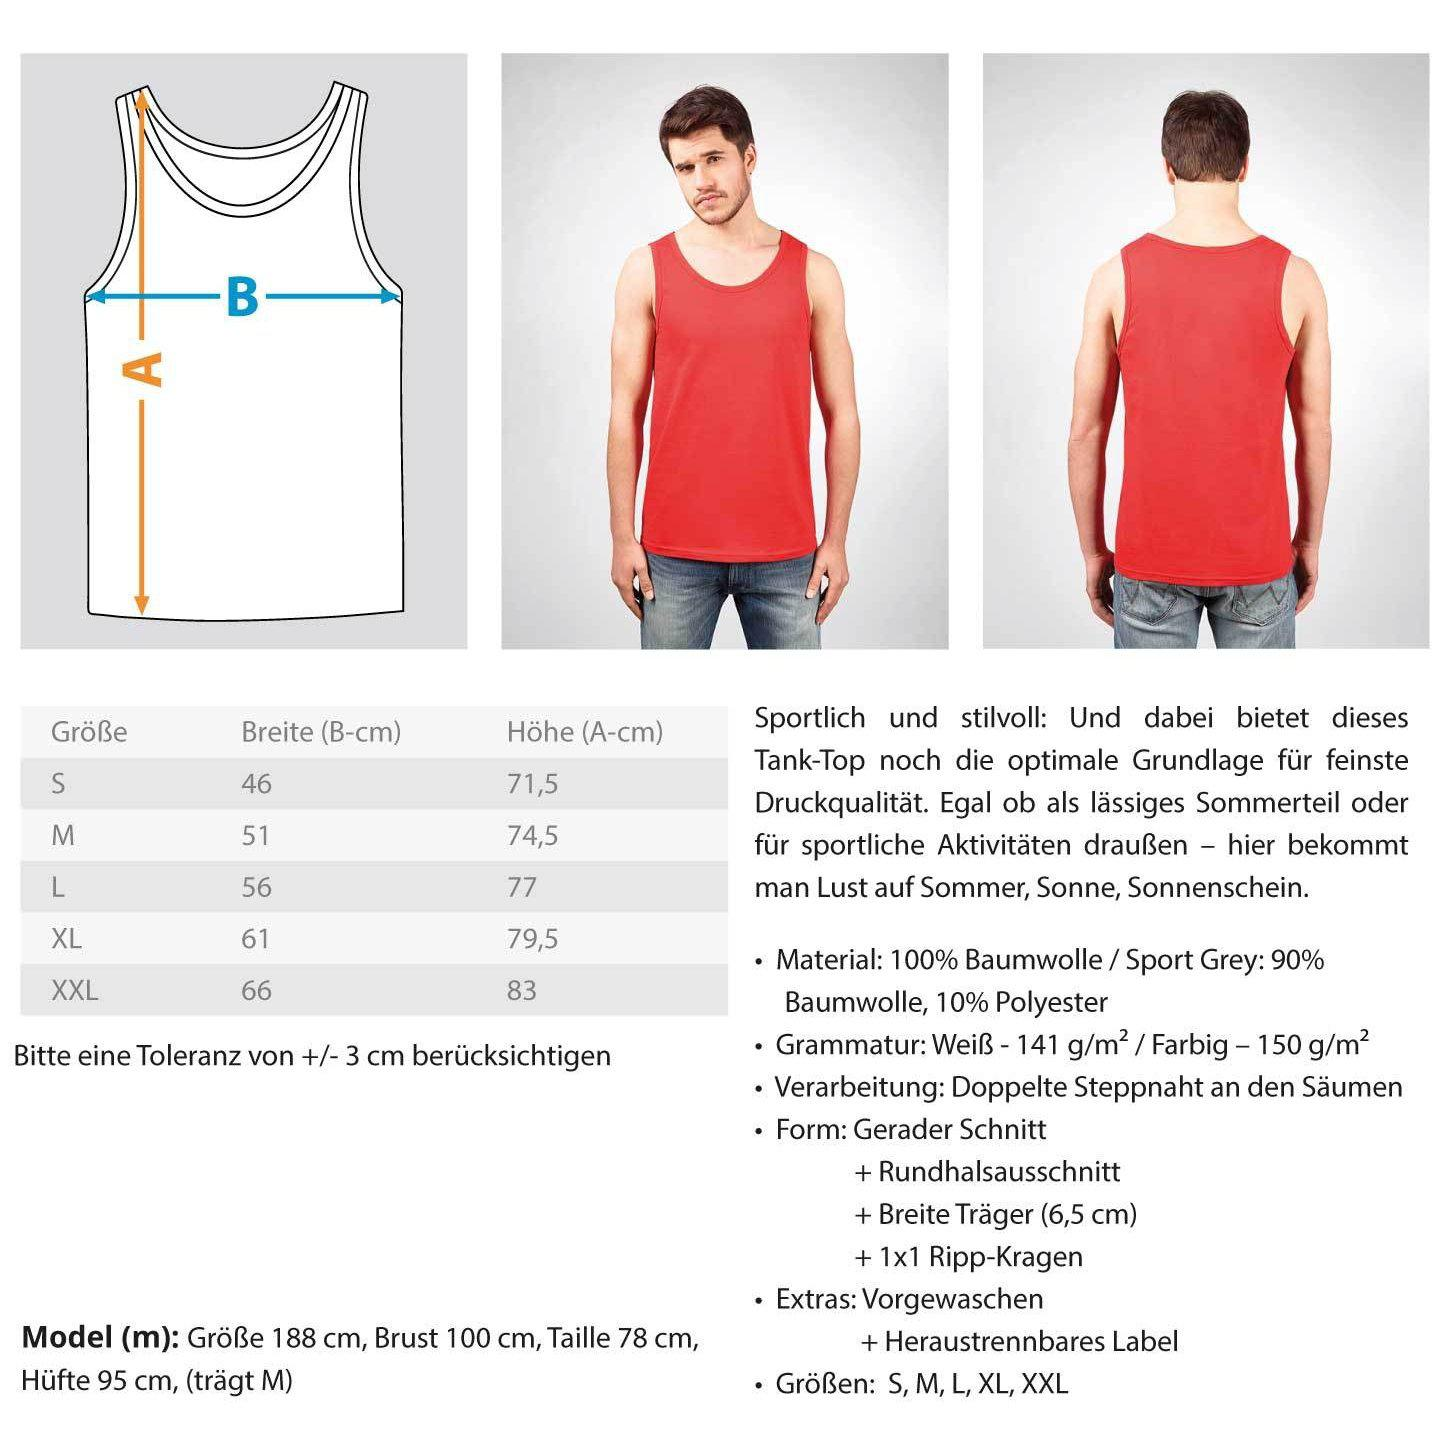 Rave On!® - Made On Planet Earth B2k20 - Herren Tanktop Herren Tank-Top - Rave On!® der Club & Techno Szene Shop für Coole Junge Mode Streetwear Style & Fashion Outfits + Sexy Festival 420 Stuff